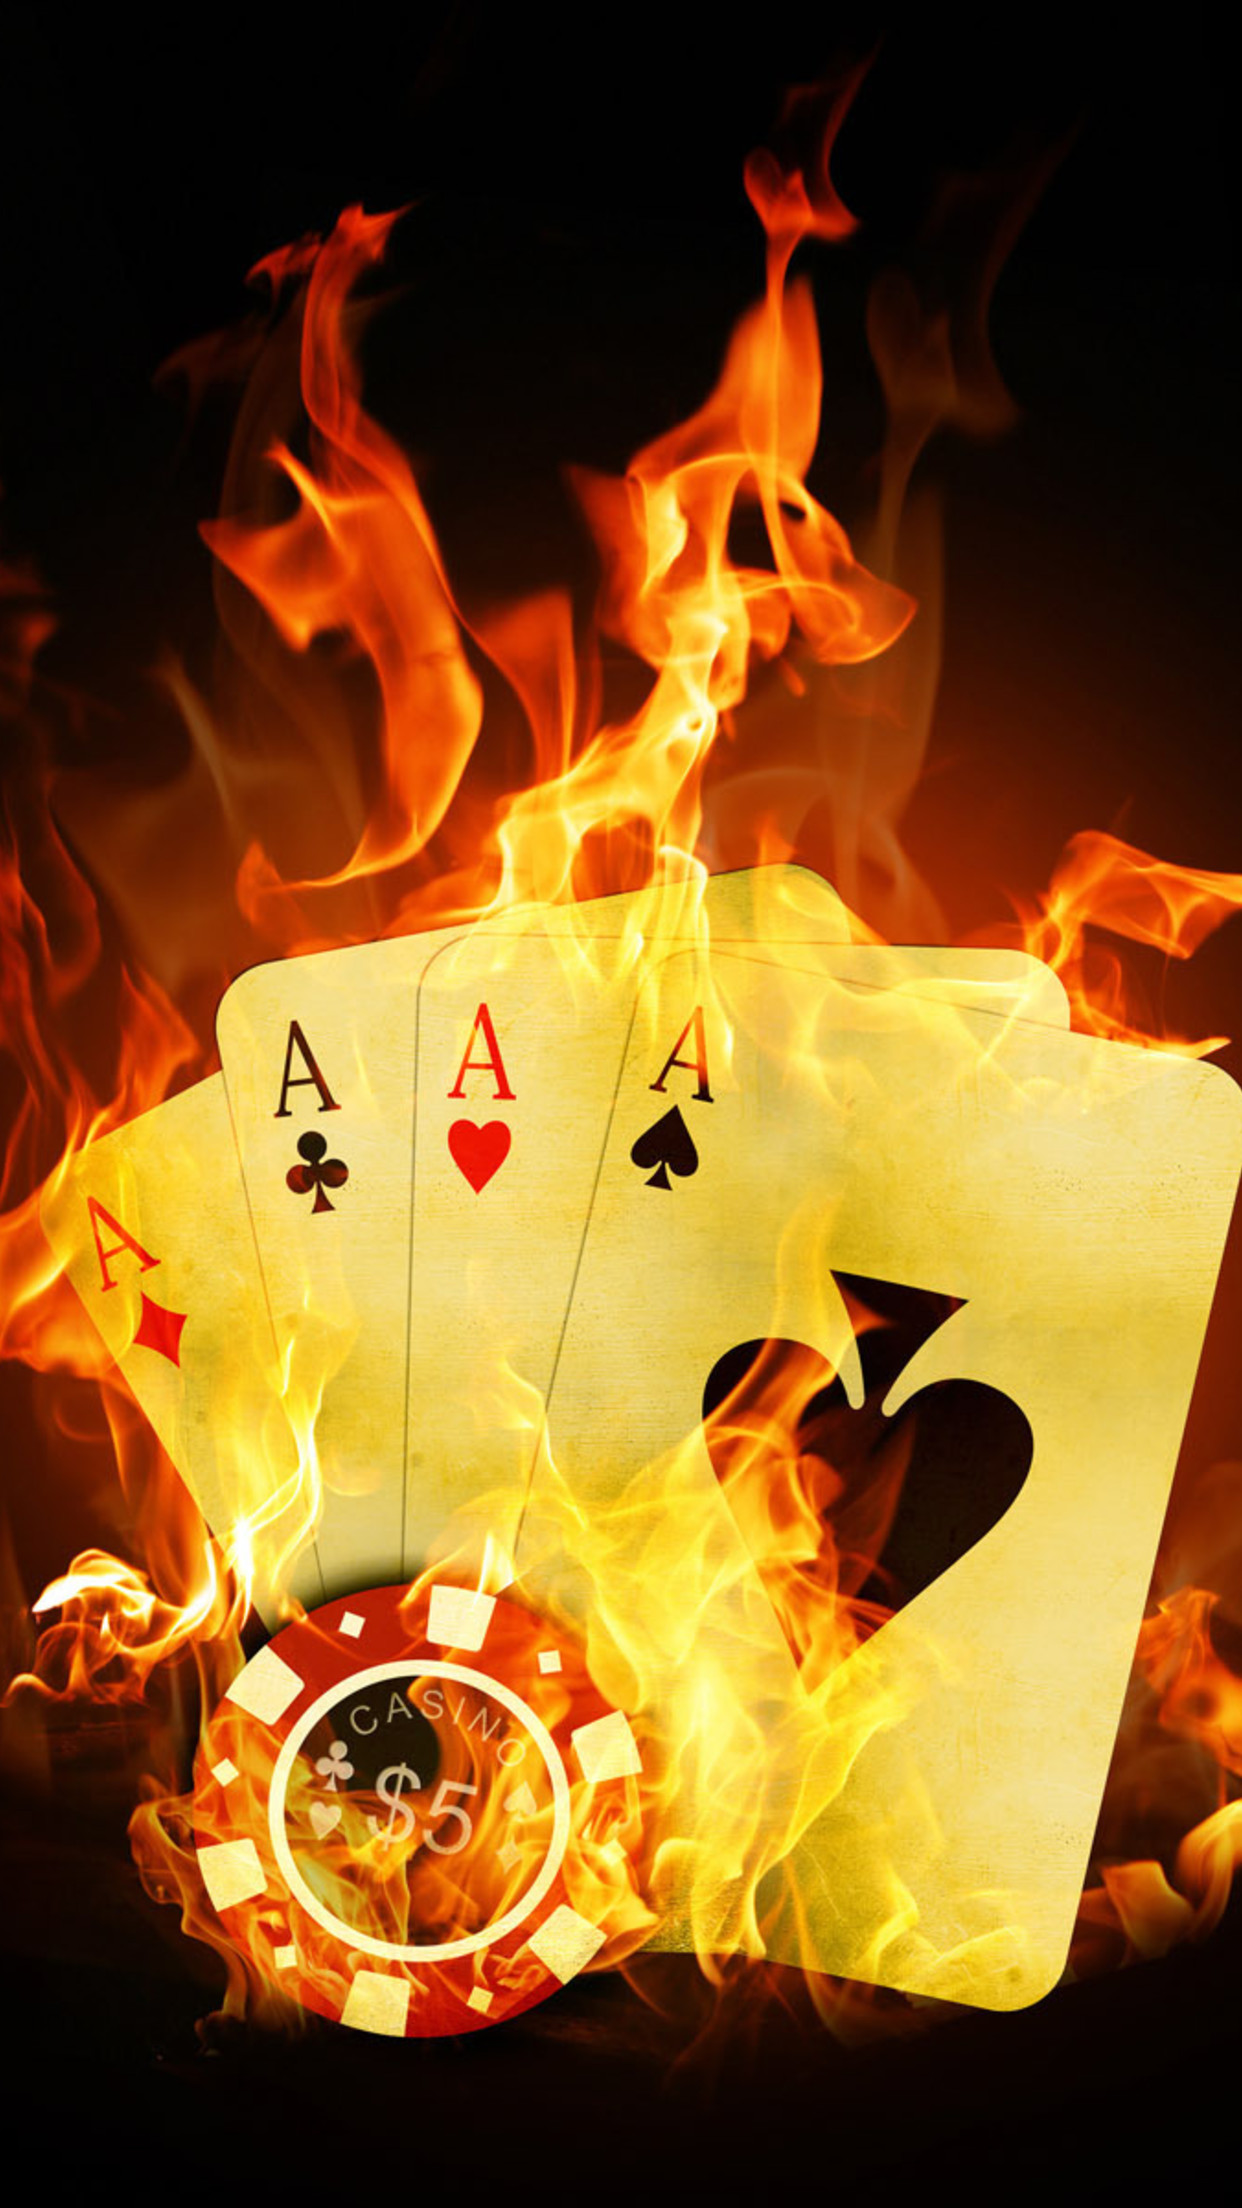 Card Fire Wallpaper For Iphone X 8 7 6 Free Download